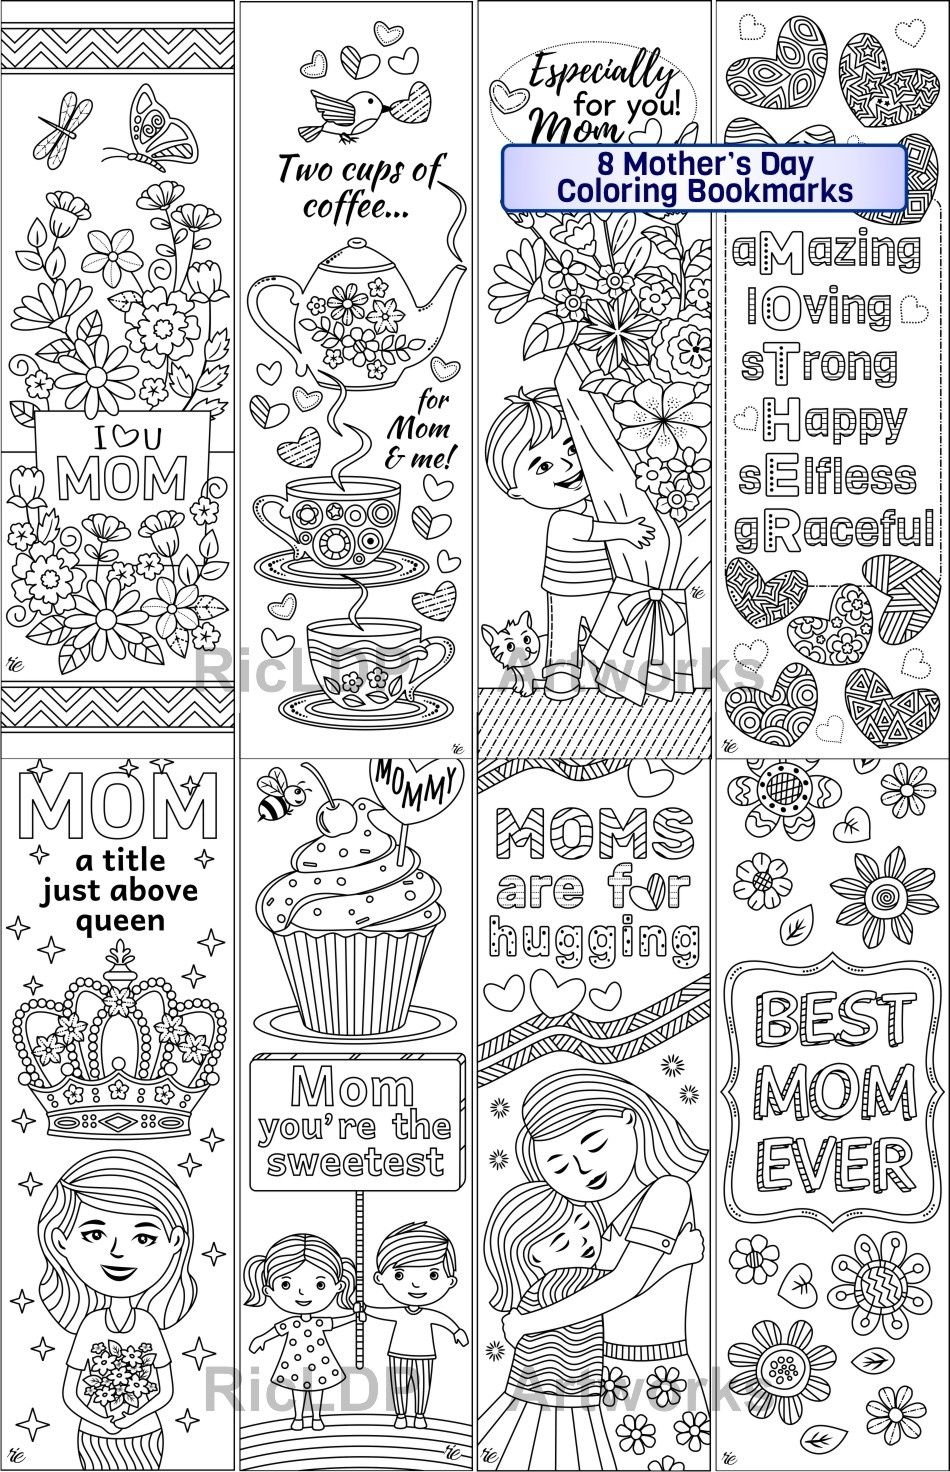 free printable bookmarks for mother's day